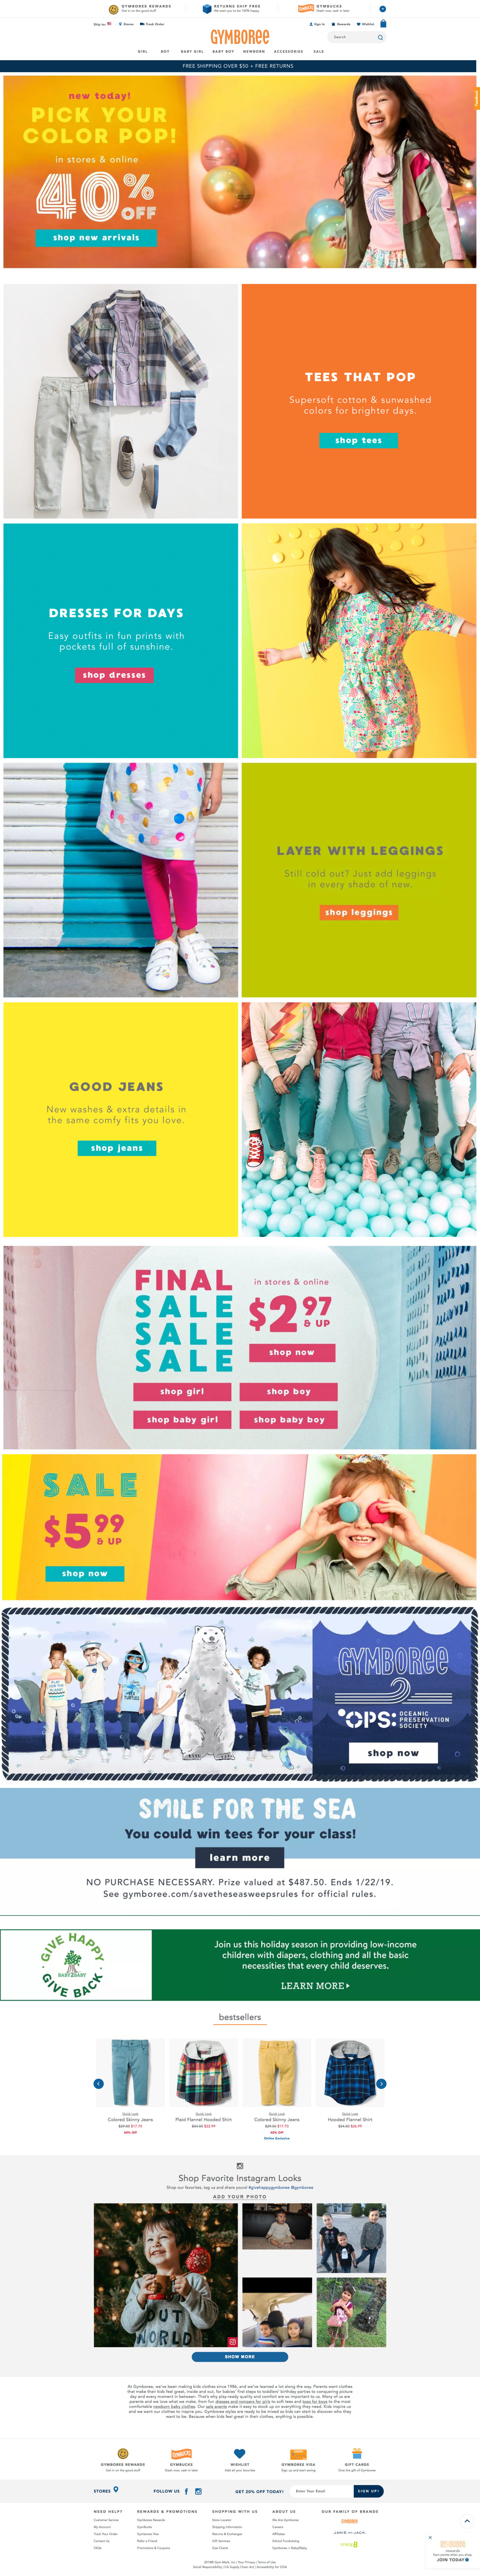 Gymboree Homepage Redesign